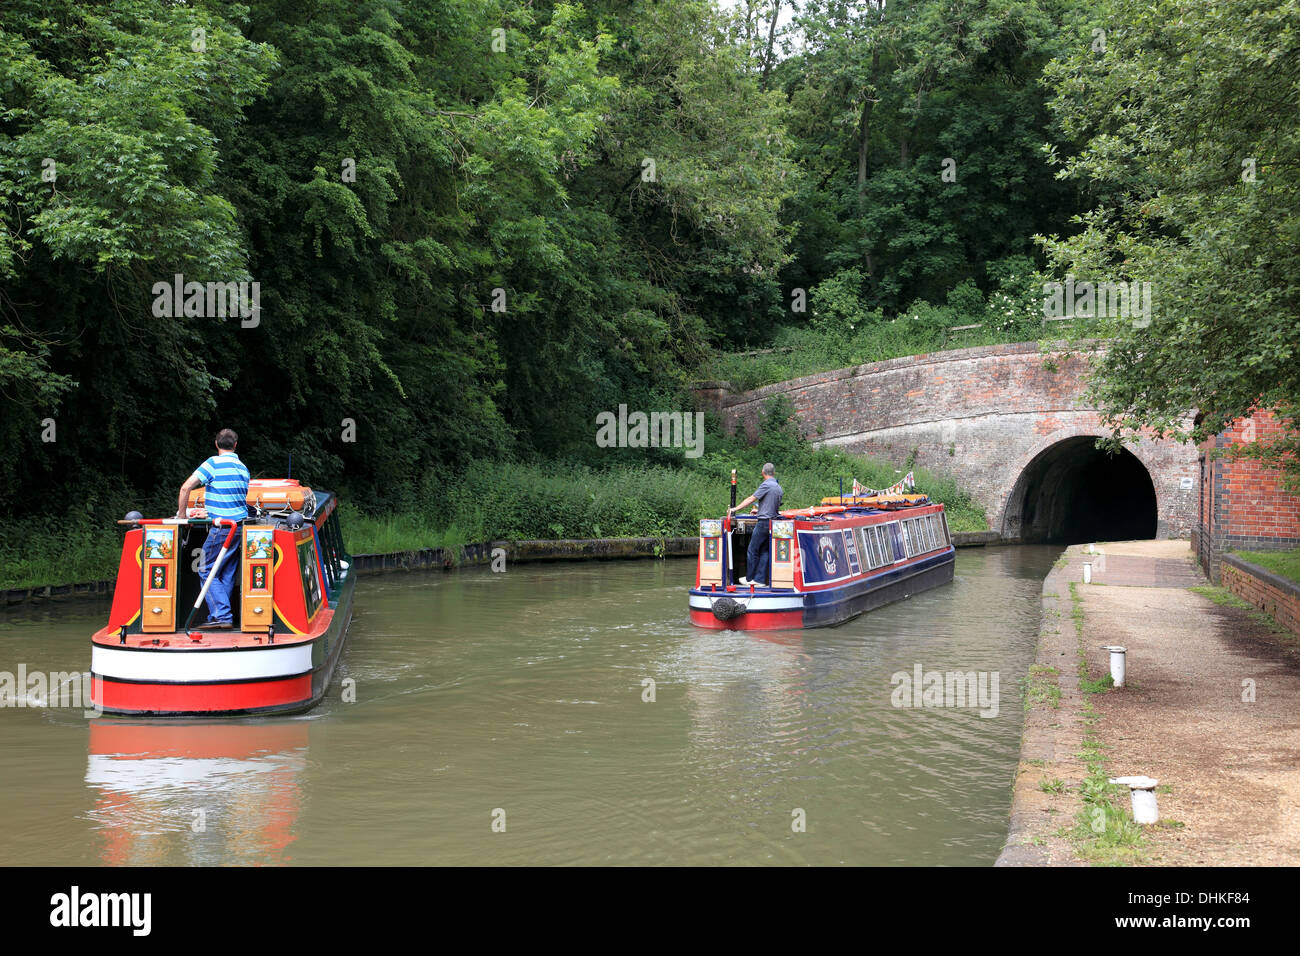 Two narrowboats approaching the southern portal of Blisworth Tunnel on the Grand Union Canal at Stoke Bruerne - Stock Image